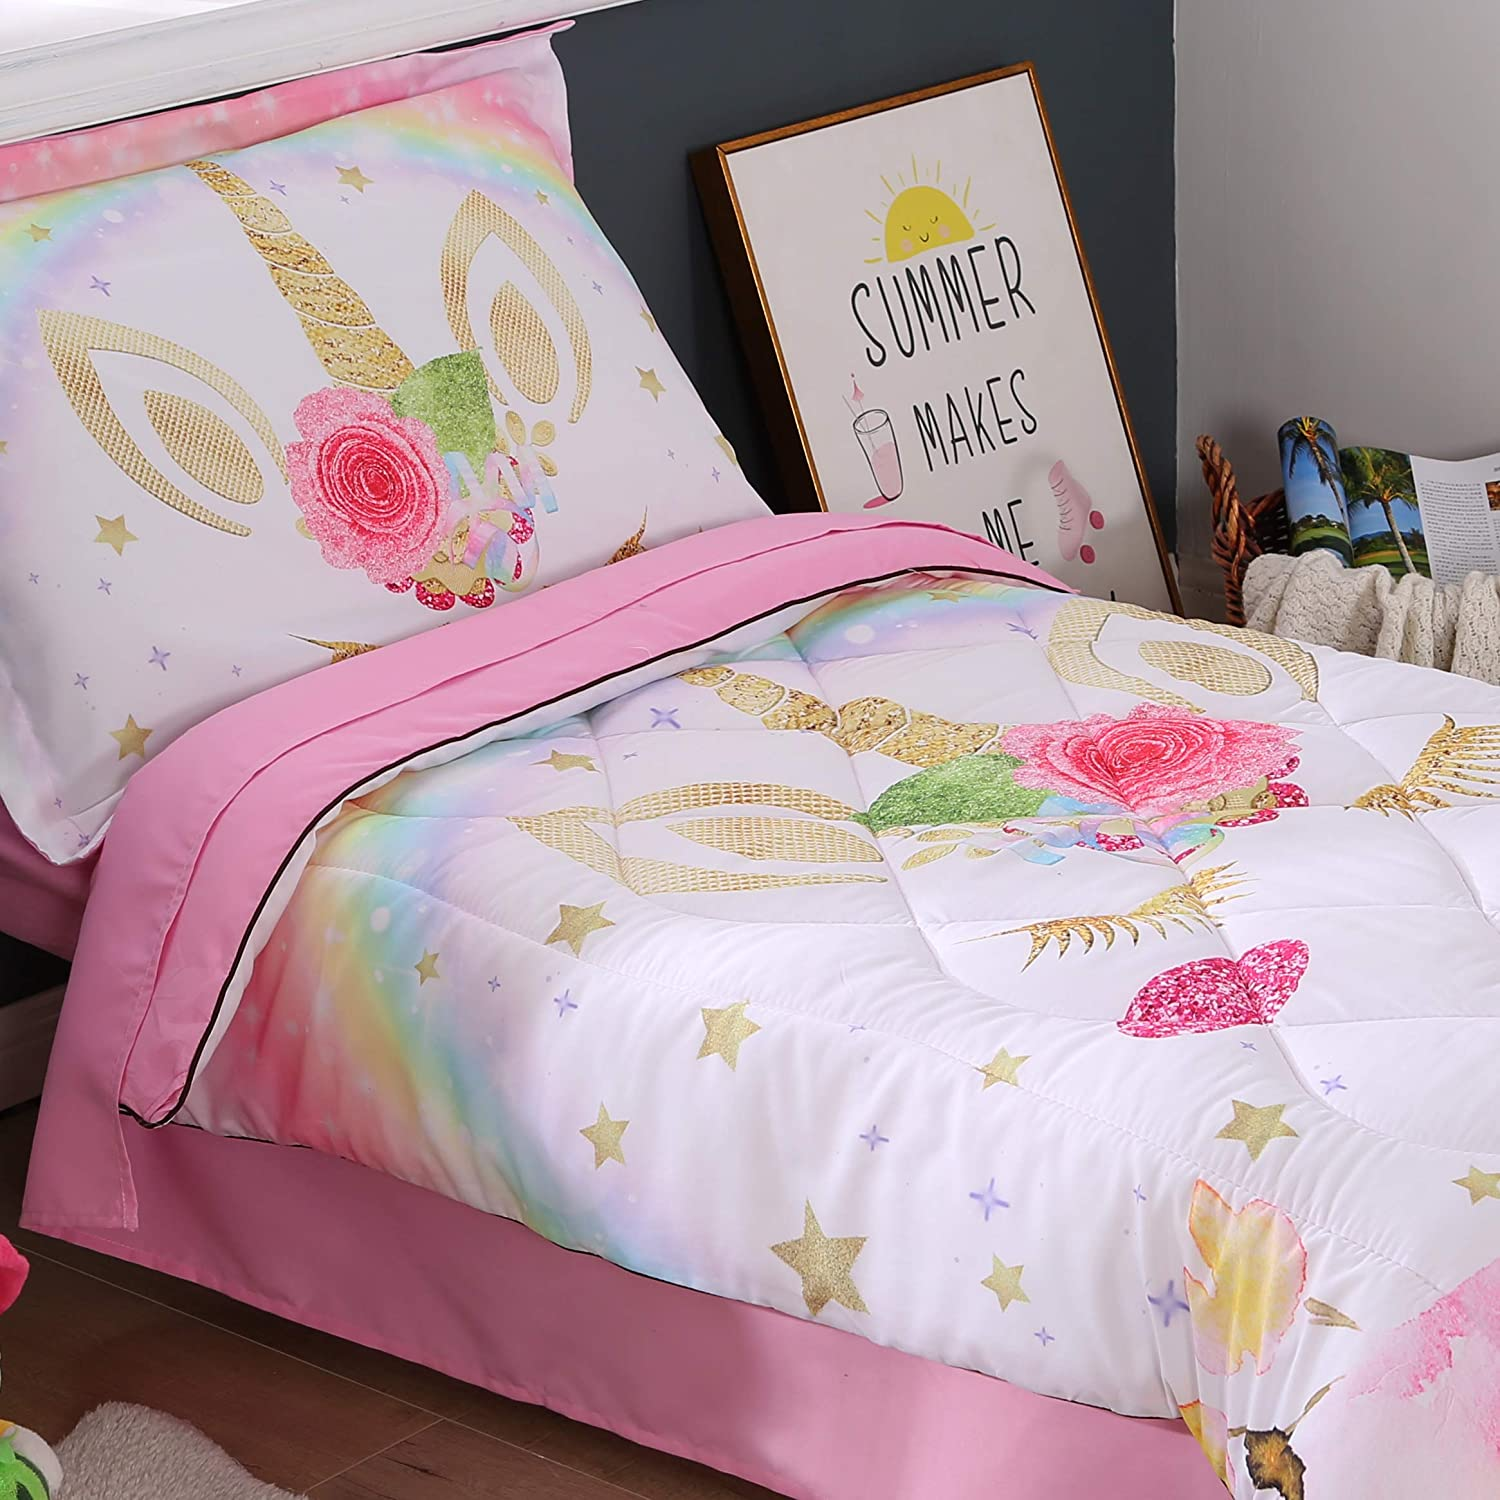 Wowelife Rainbow Unicorn Toddler Bedding Set Pink 4 Piece Clounds Toddler Bed Sets for Girls Pink Rainbow